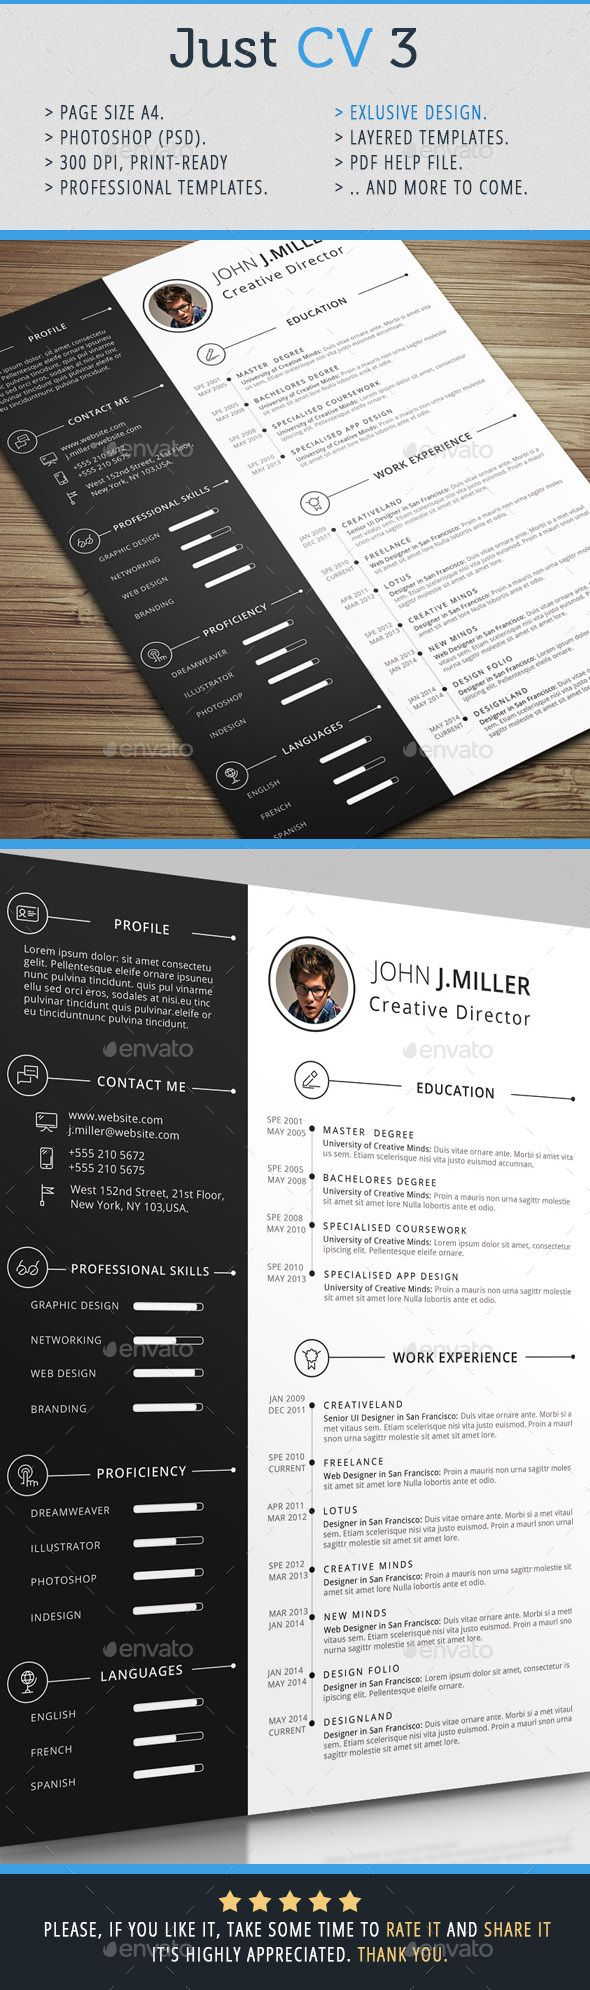 Resume Cv Templates Free Download%0A investor proposal template